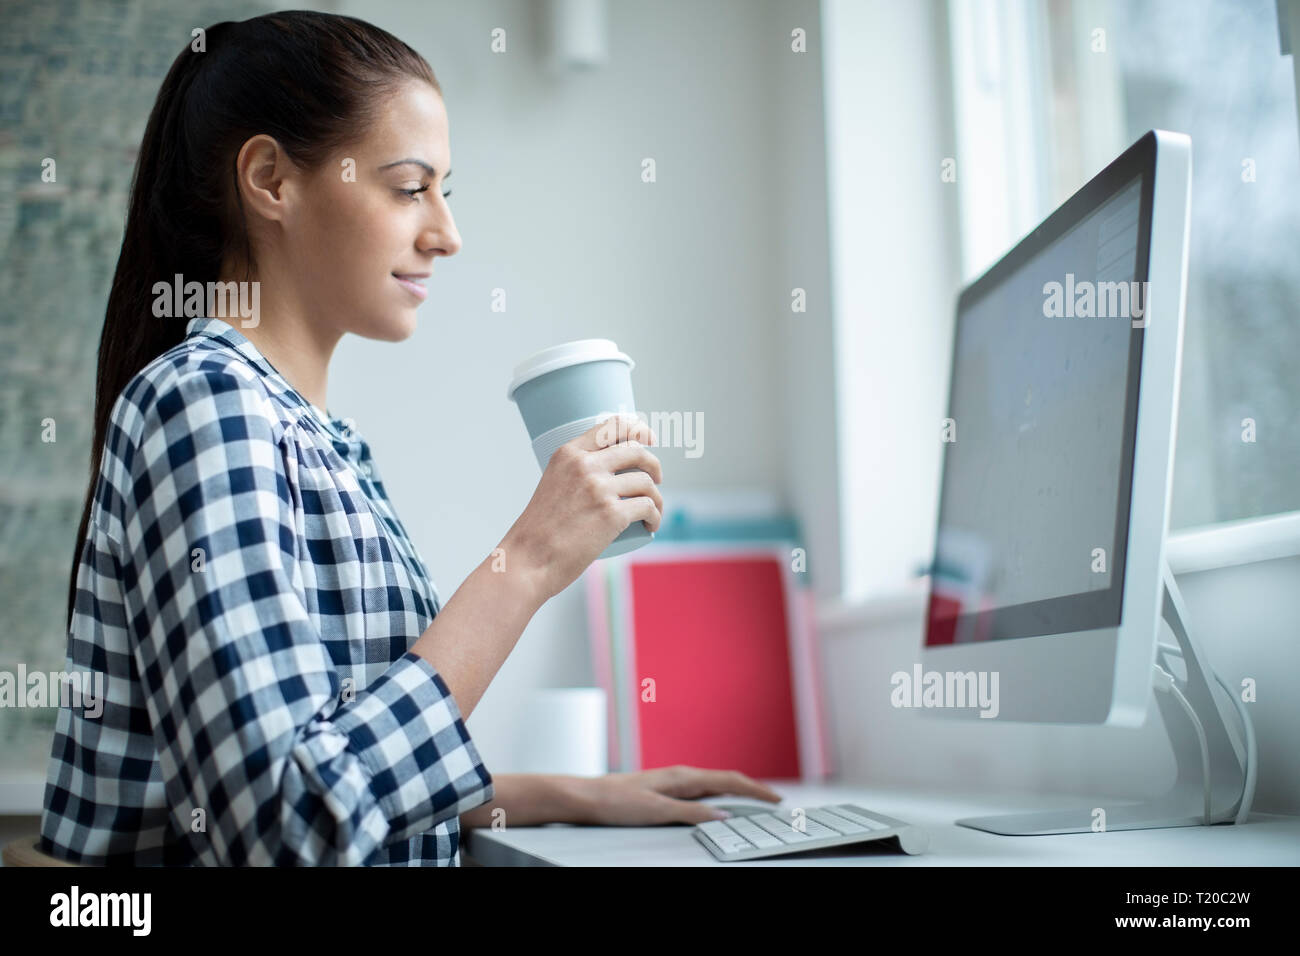 Woman Working At Computer Drinking From Reusable Takeaway Cup - Stock Image